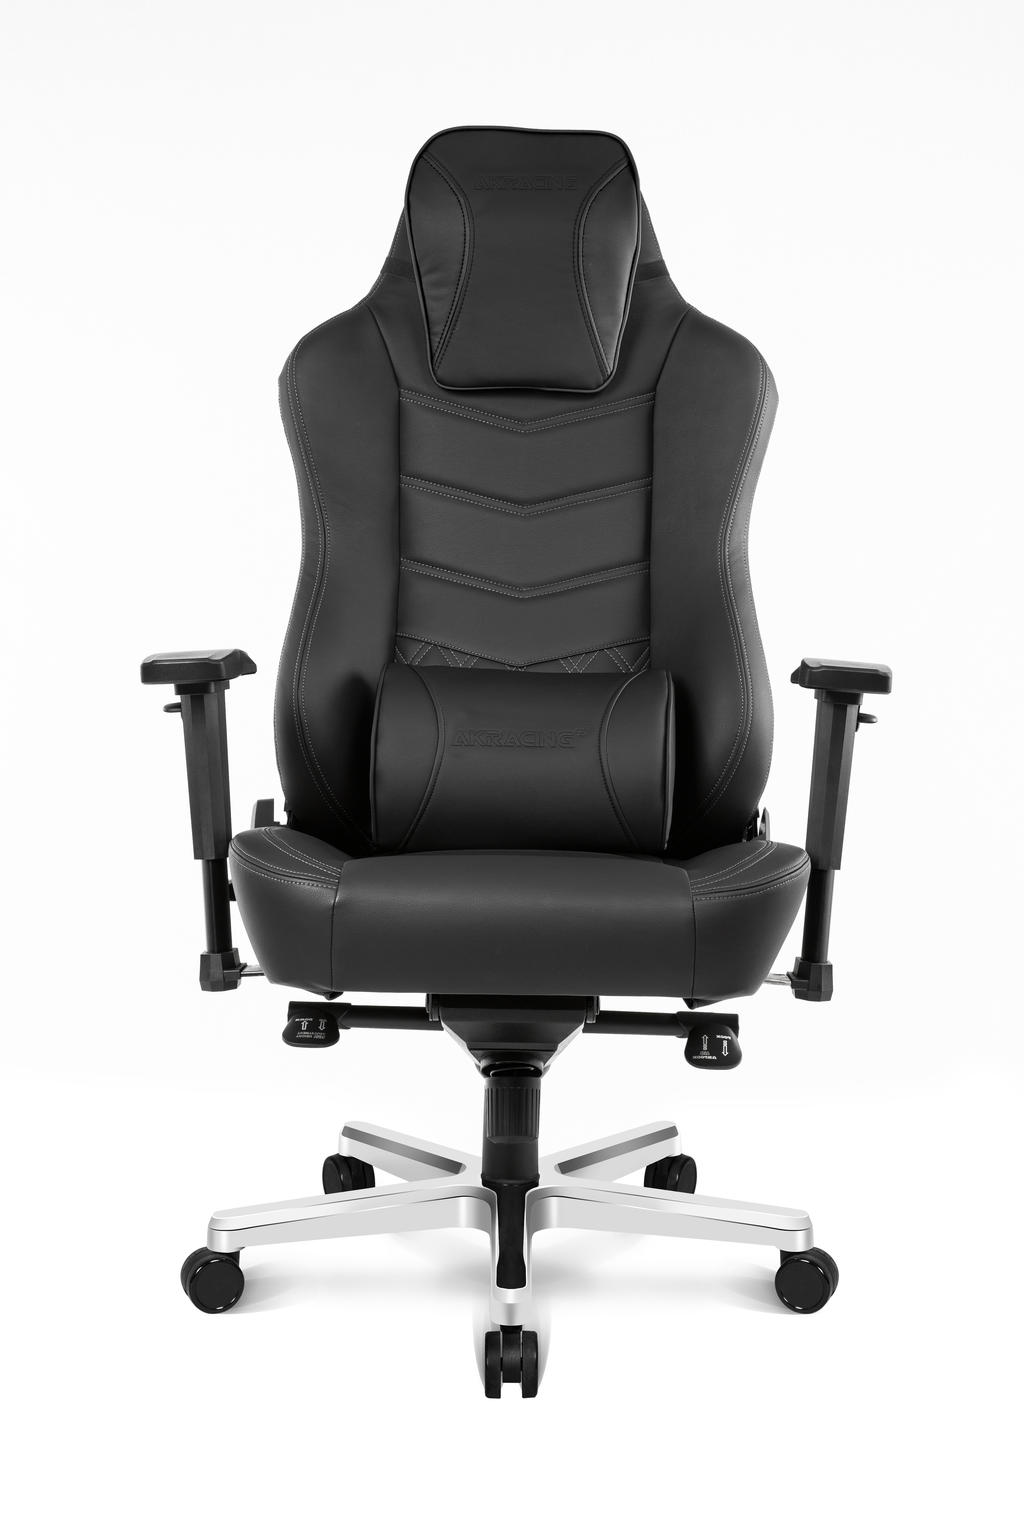 AKRacing Office Onyx gamestoel